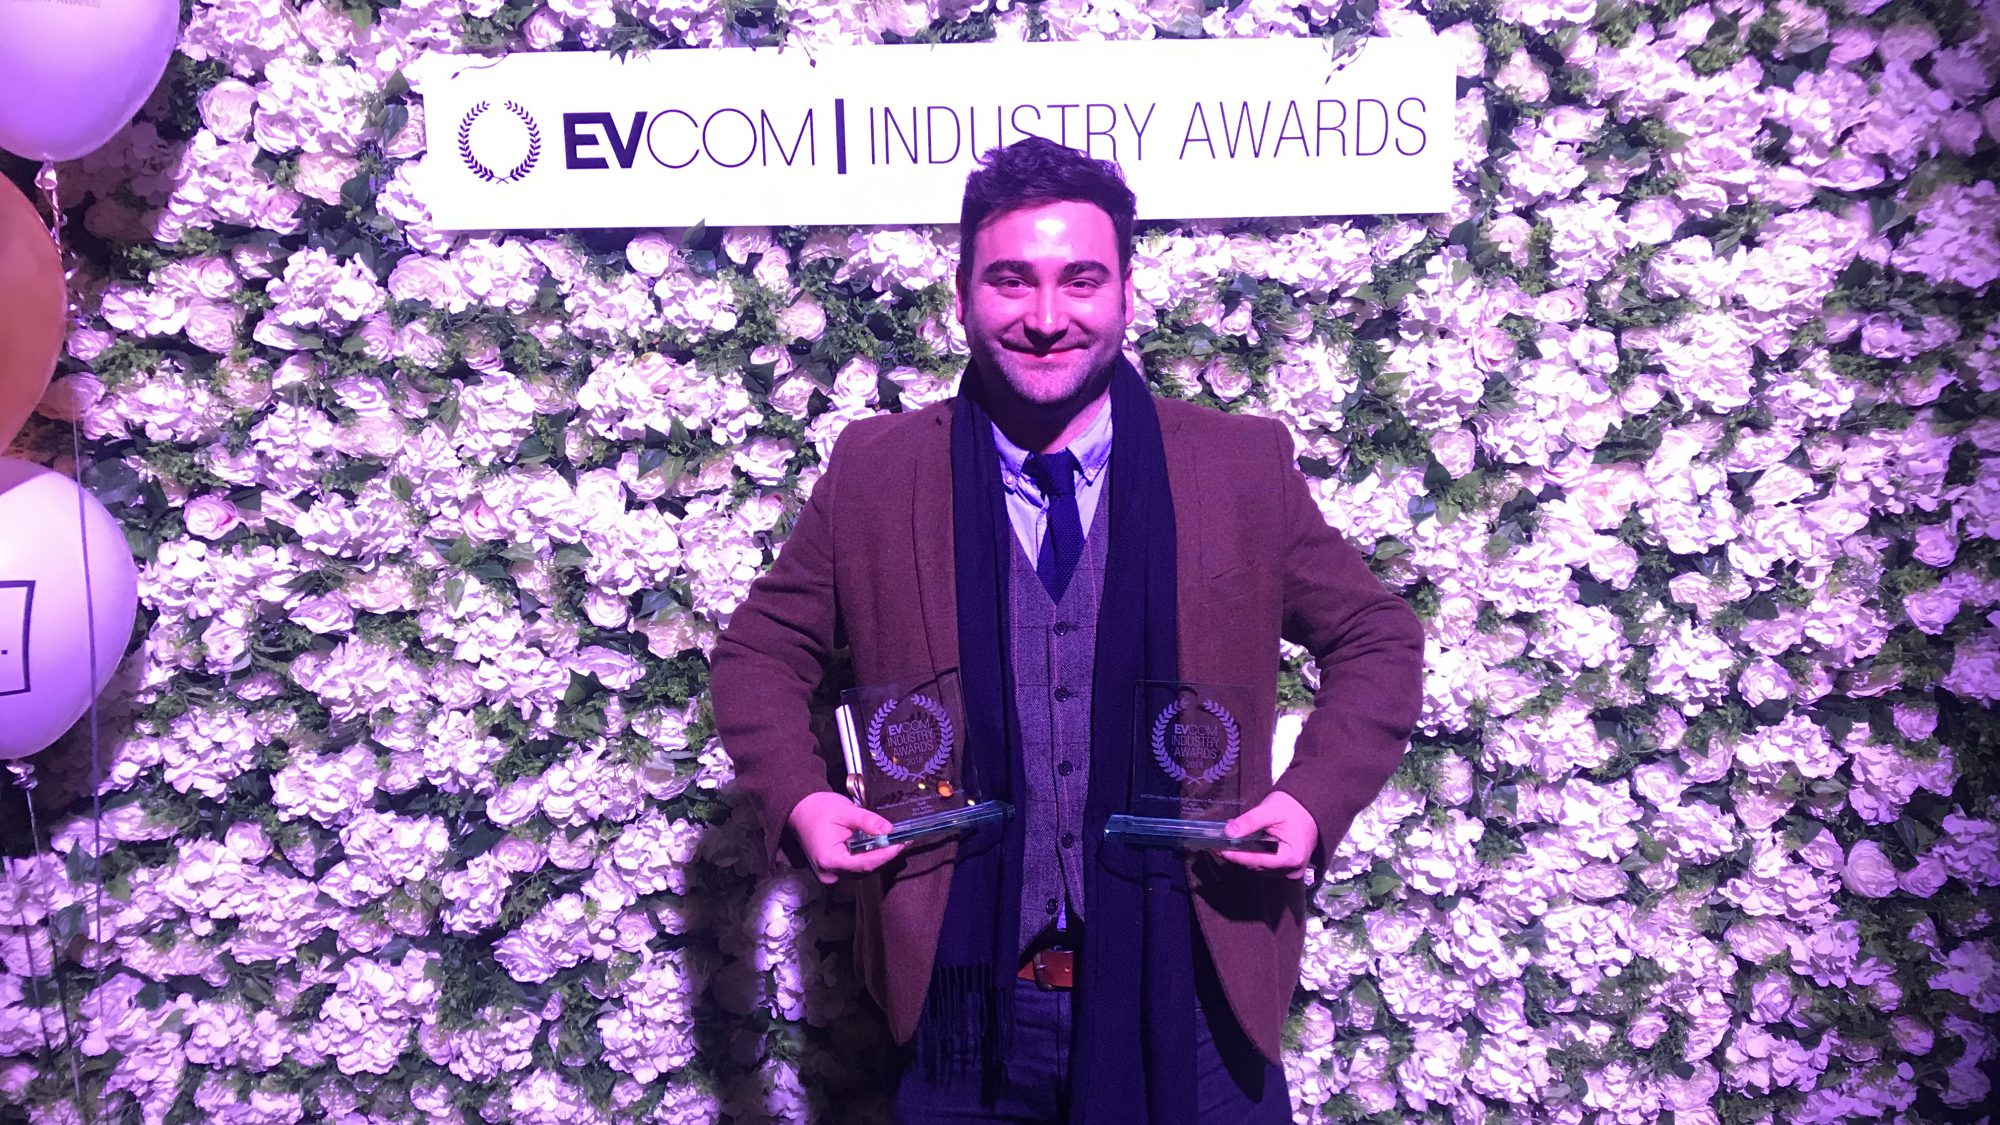 Raw London's Creative Lead holding trophies at EVCOM Awards 2018